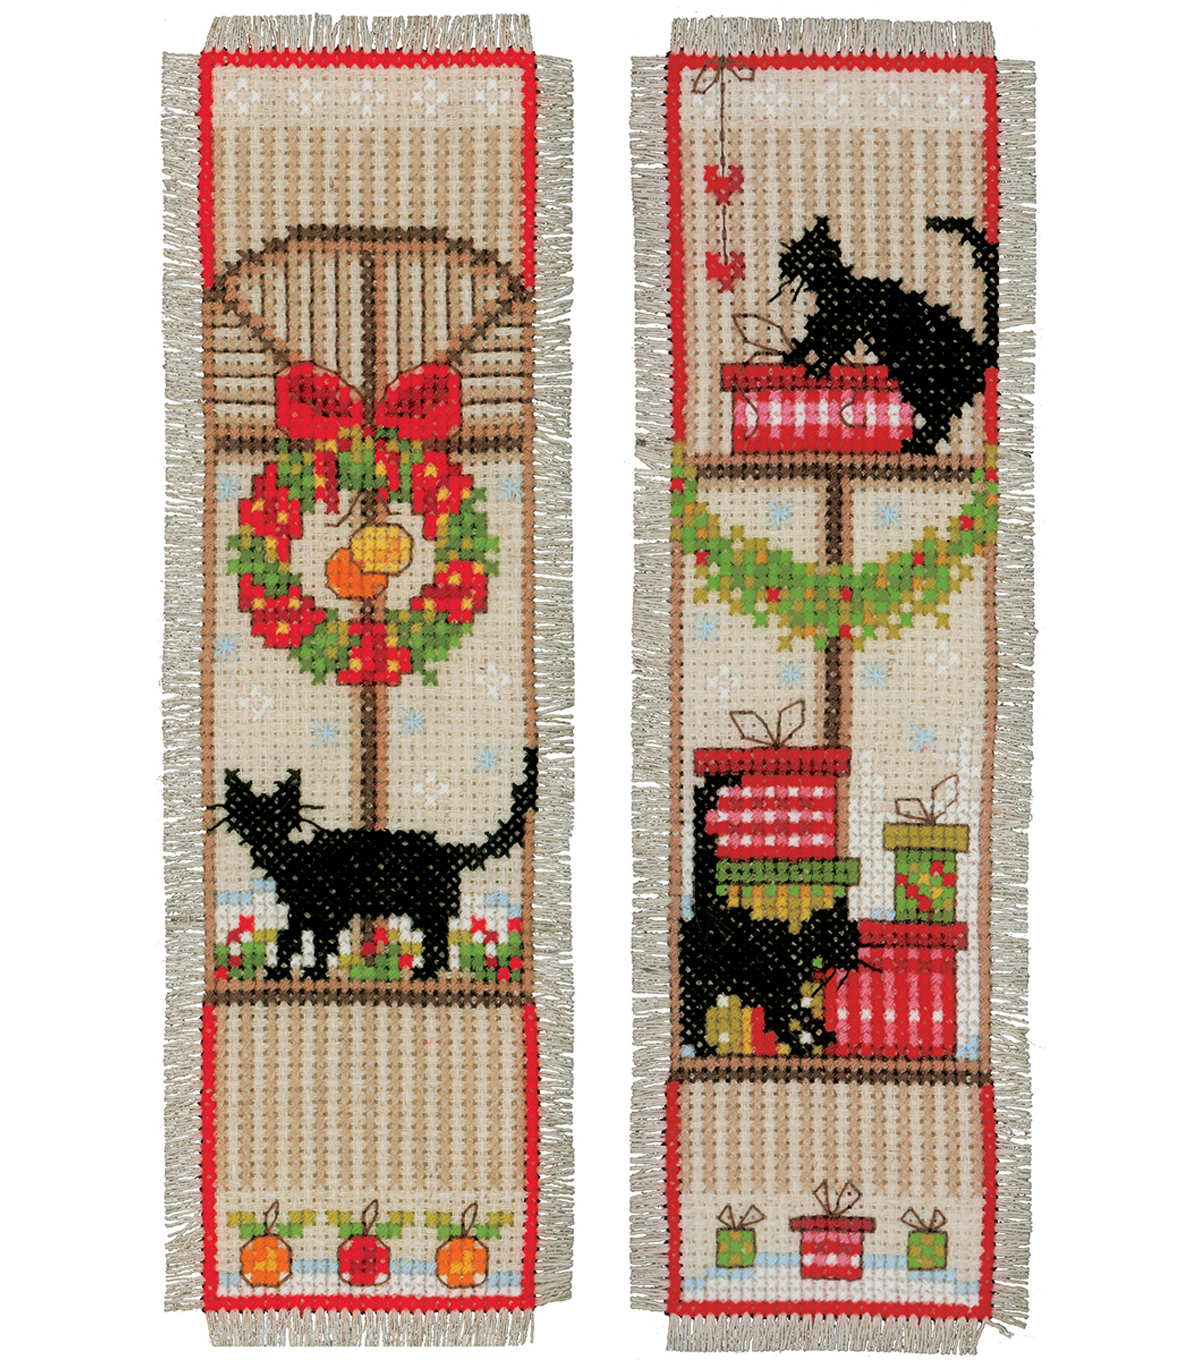 Vervaco 8\u0027\u0027x2.4\u0027\u0027 Counted Cross Stitch Kit-Christmas Atmosphere